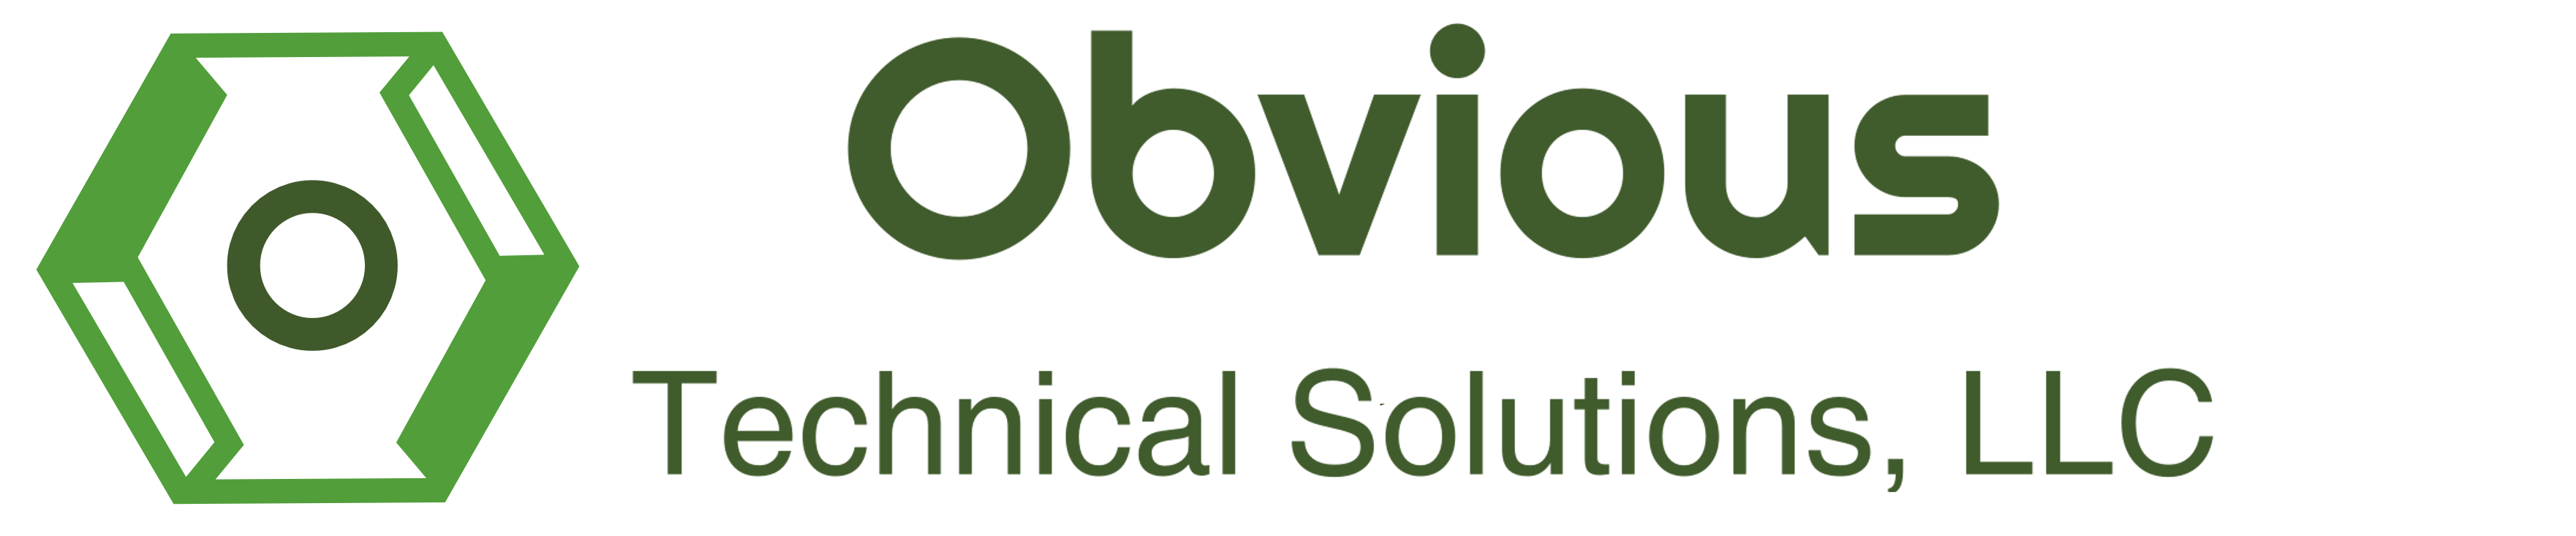 Obvious Technical Solutions, LLC